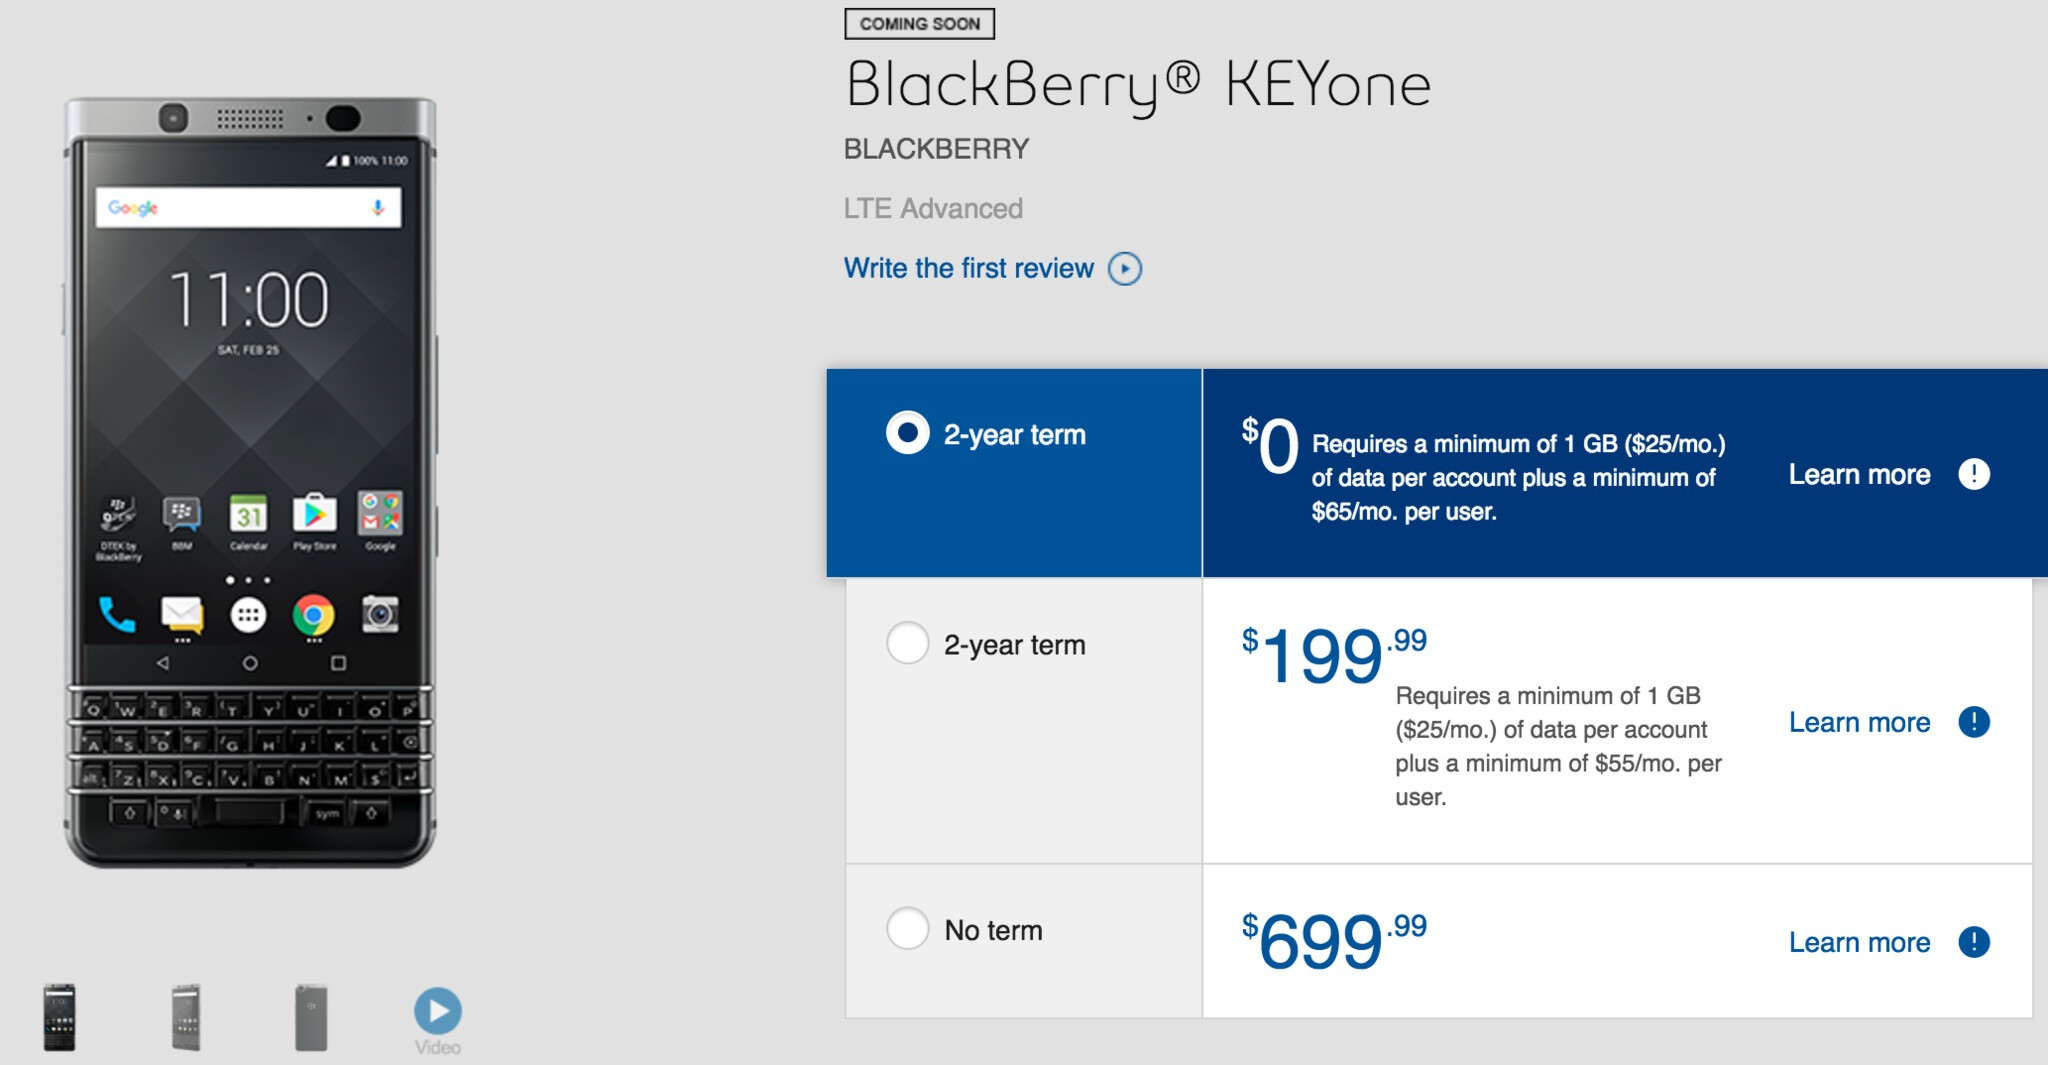 BlackBerry KEYone Coming Soon Pages Come to Canada's Bell, Bell MTS and SaskTel